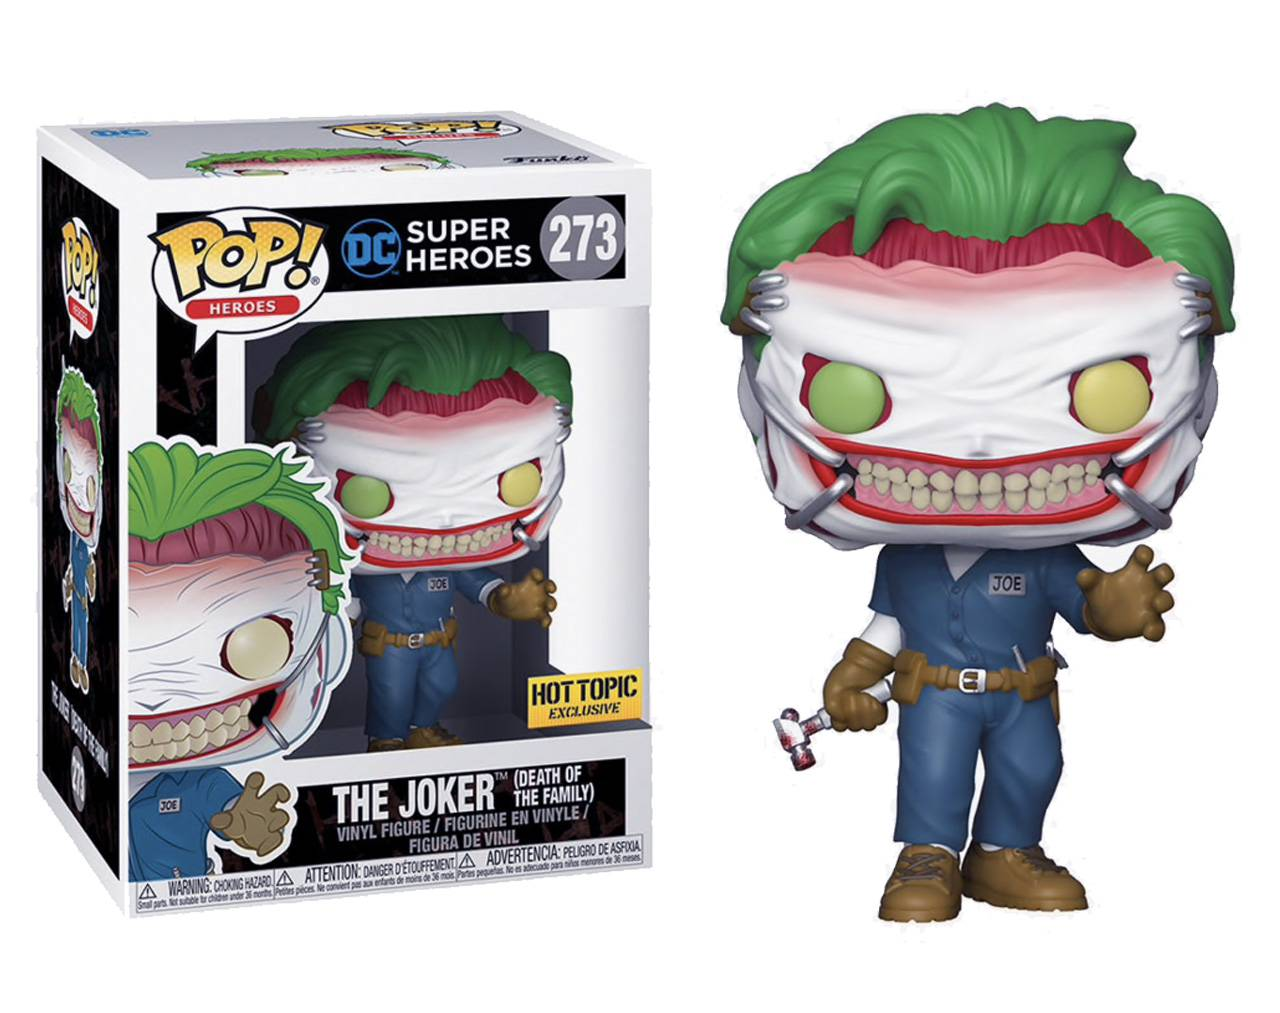 The Joker (Death of the Family) Hot Topic Pop! Vinyl